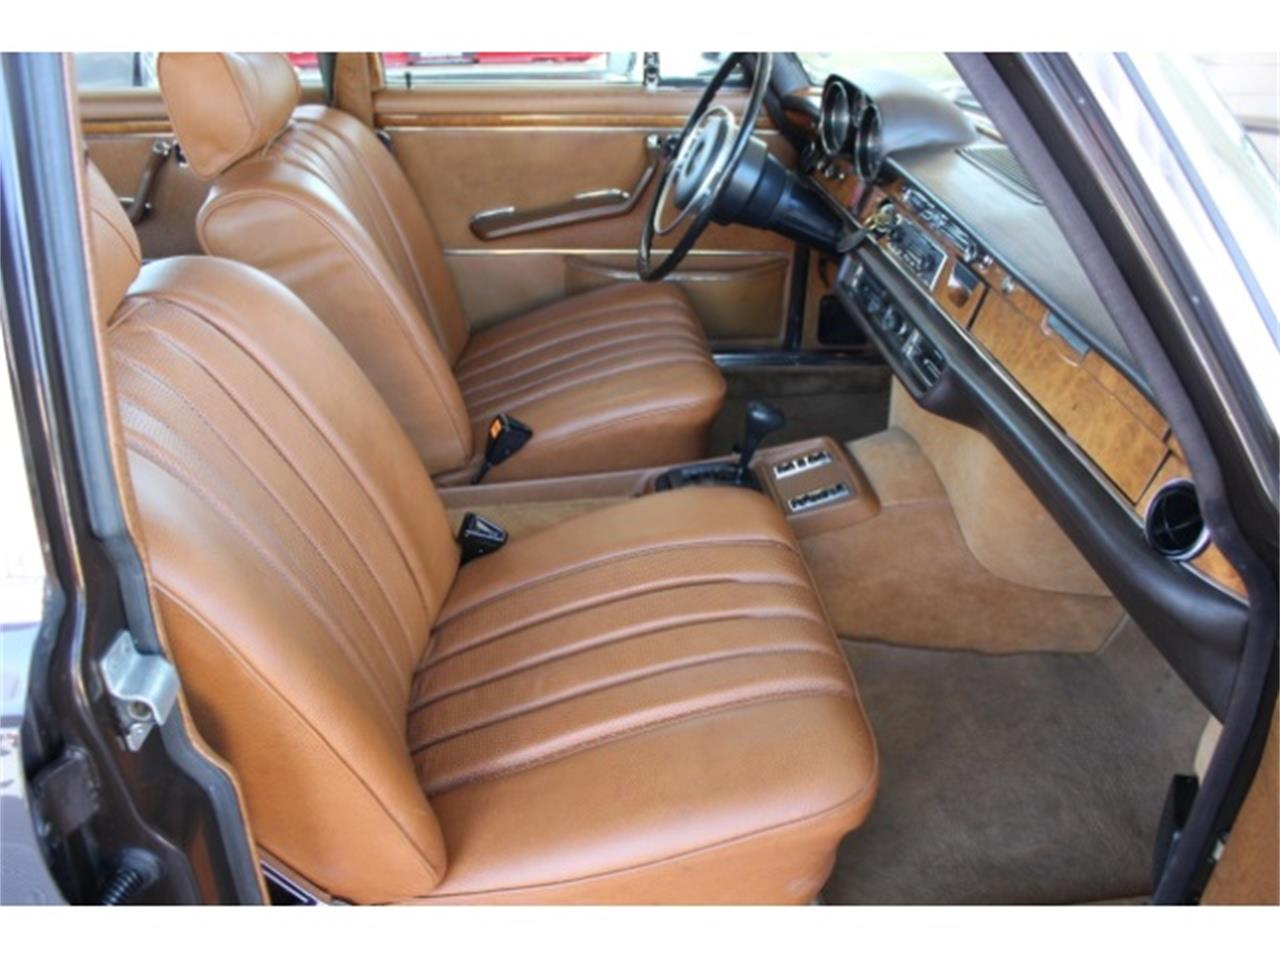 1972 Mercedes-Benz 300SEL for sale in Sherman Oaks, CA – photo 16